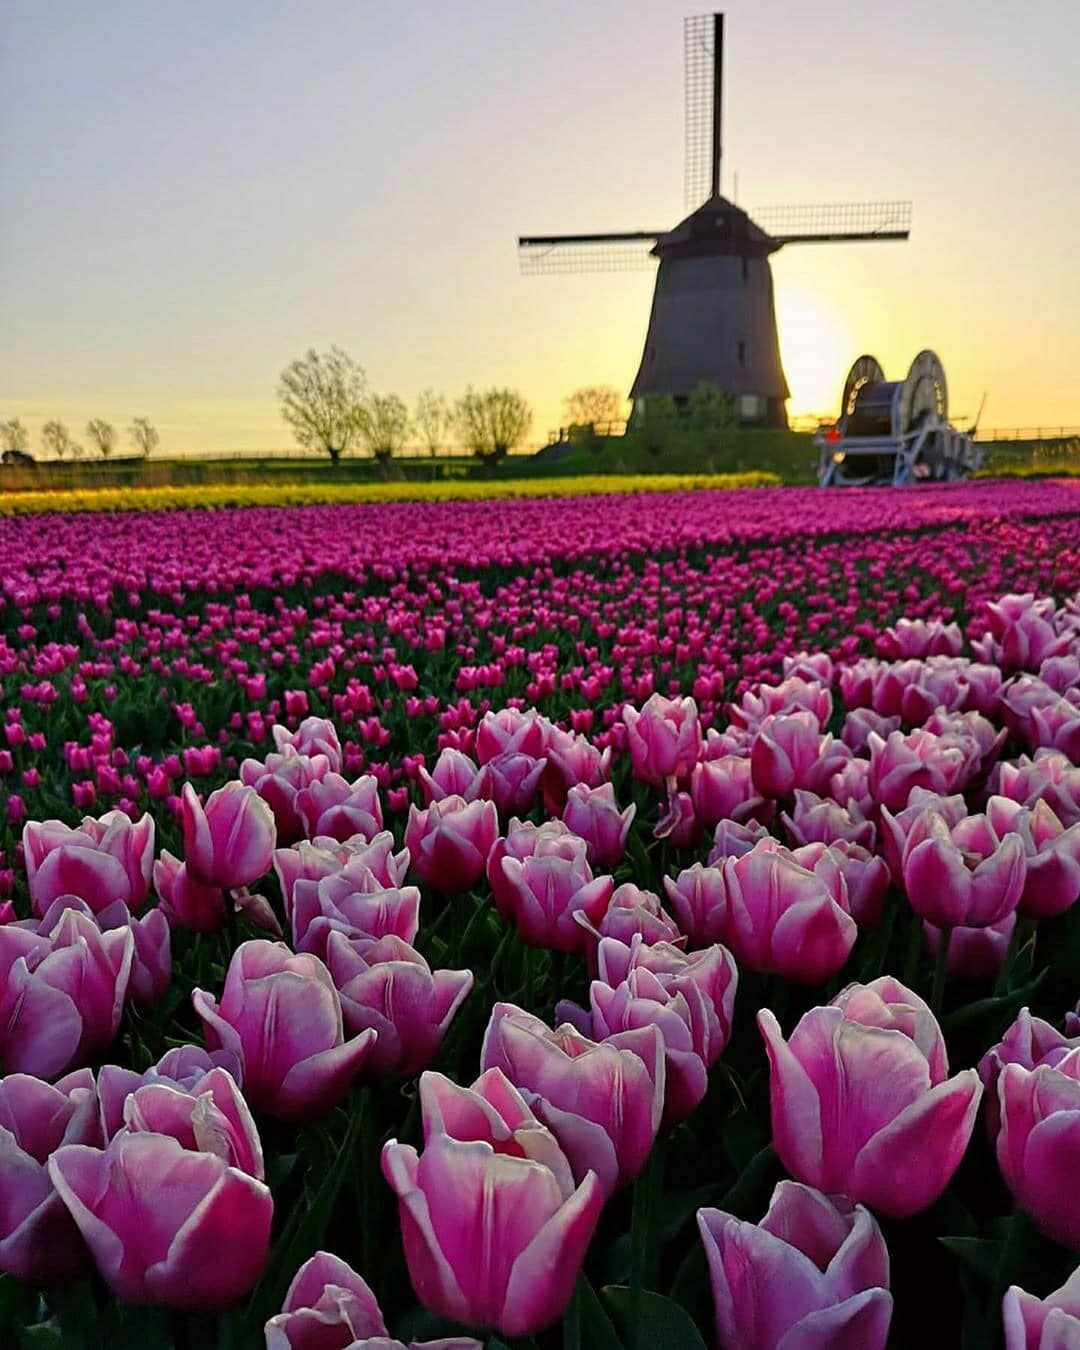 Top 10 Tourist Attraction To Visit in Netherlands in 2020